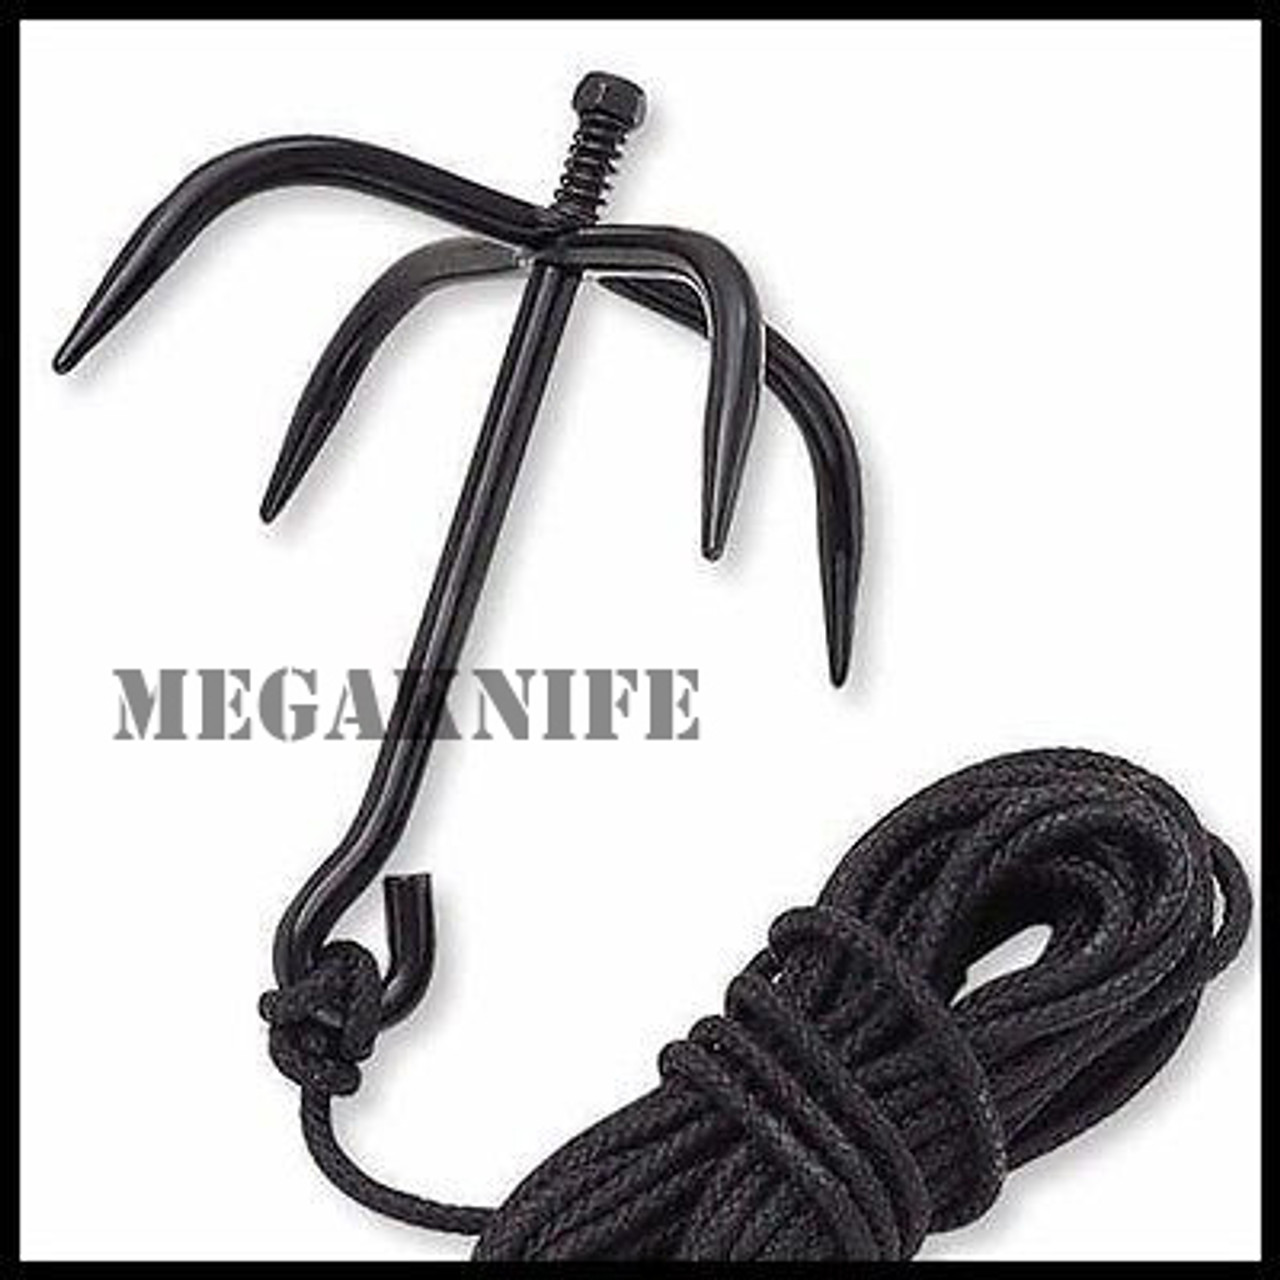 Grappling Hook with Cord